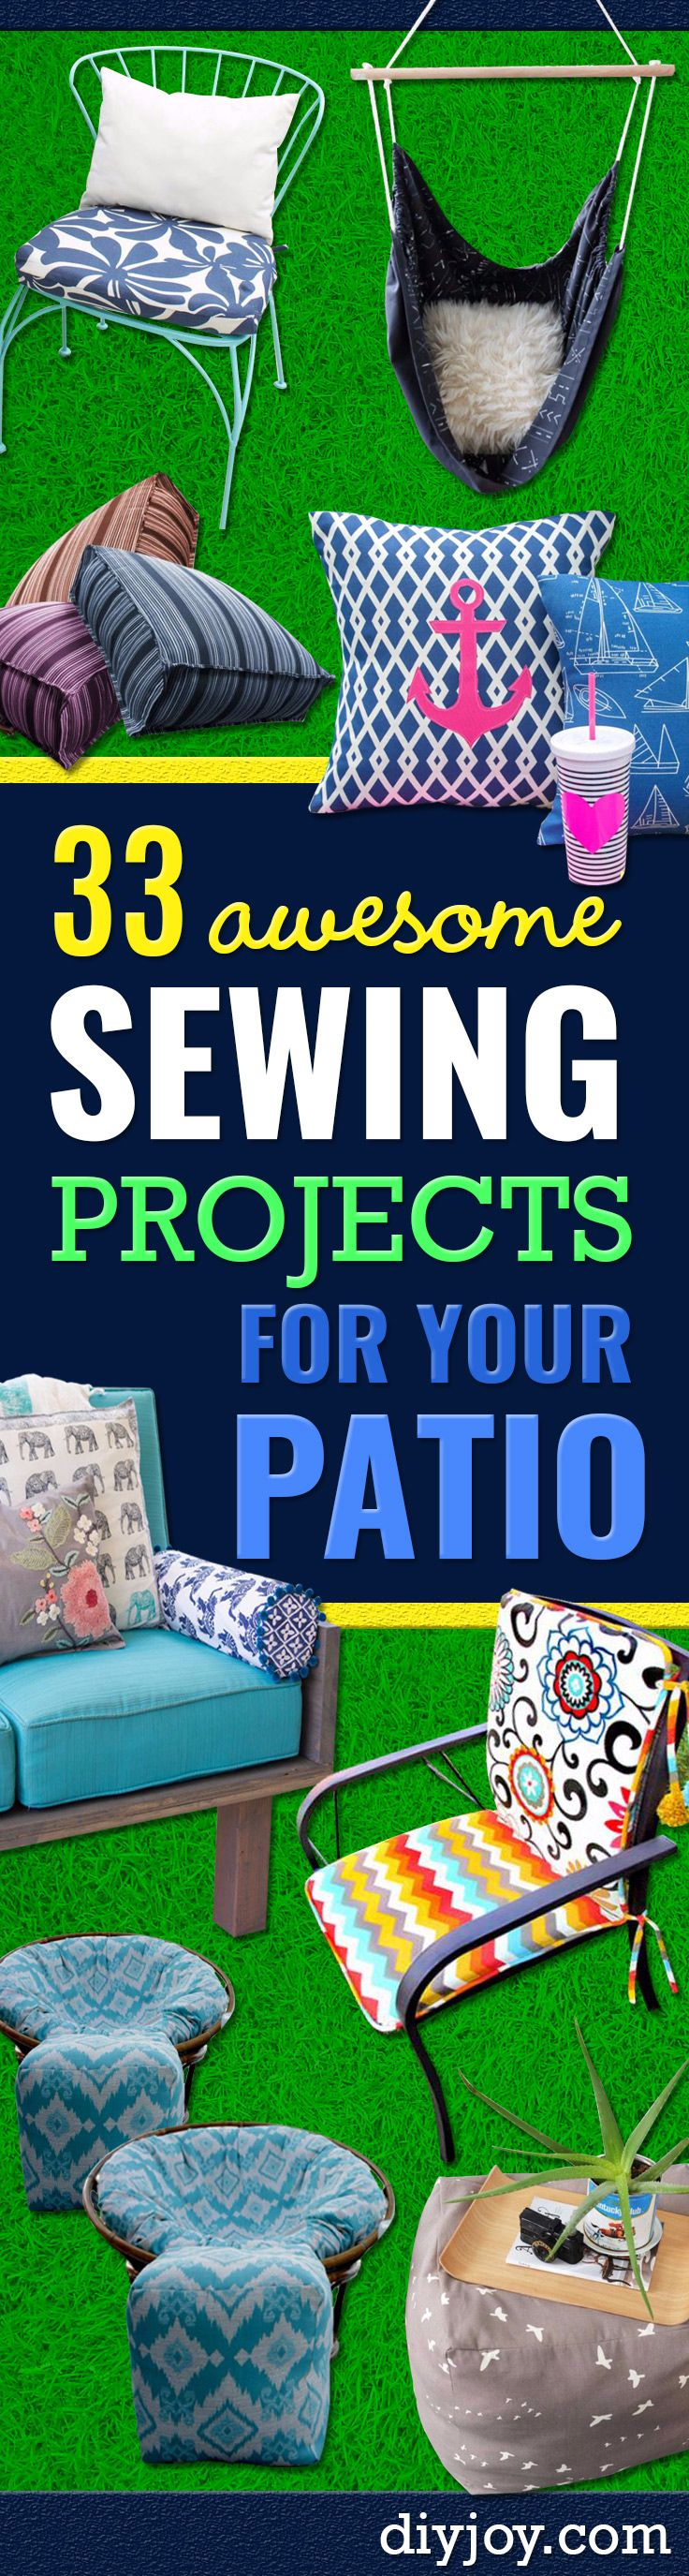 Sewing Projects for The Patio - Step by Step   Instructions and Free Patterns for Cushions, Pillows, Seating, Sofa   and Outdoor Patio Decor - Easy Sewing Tutorials for Beginners -   Creative and Cheap Outdoor Ideas for Those Who Love to Sew - DIY   Proje